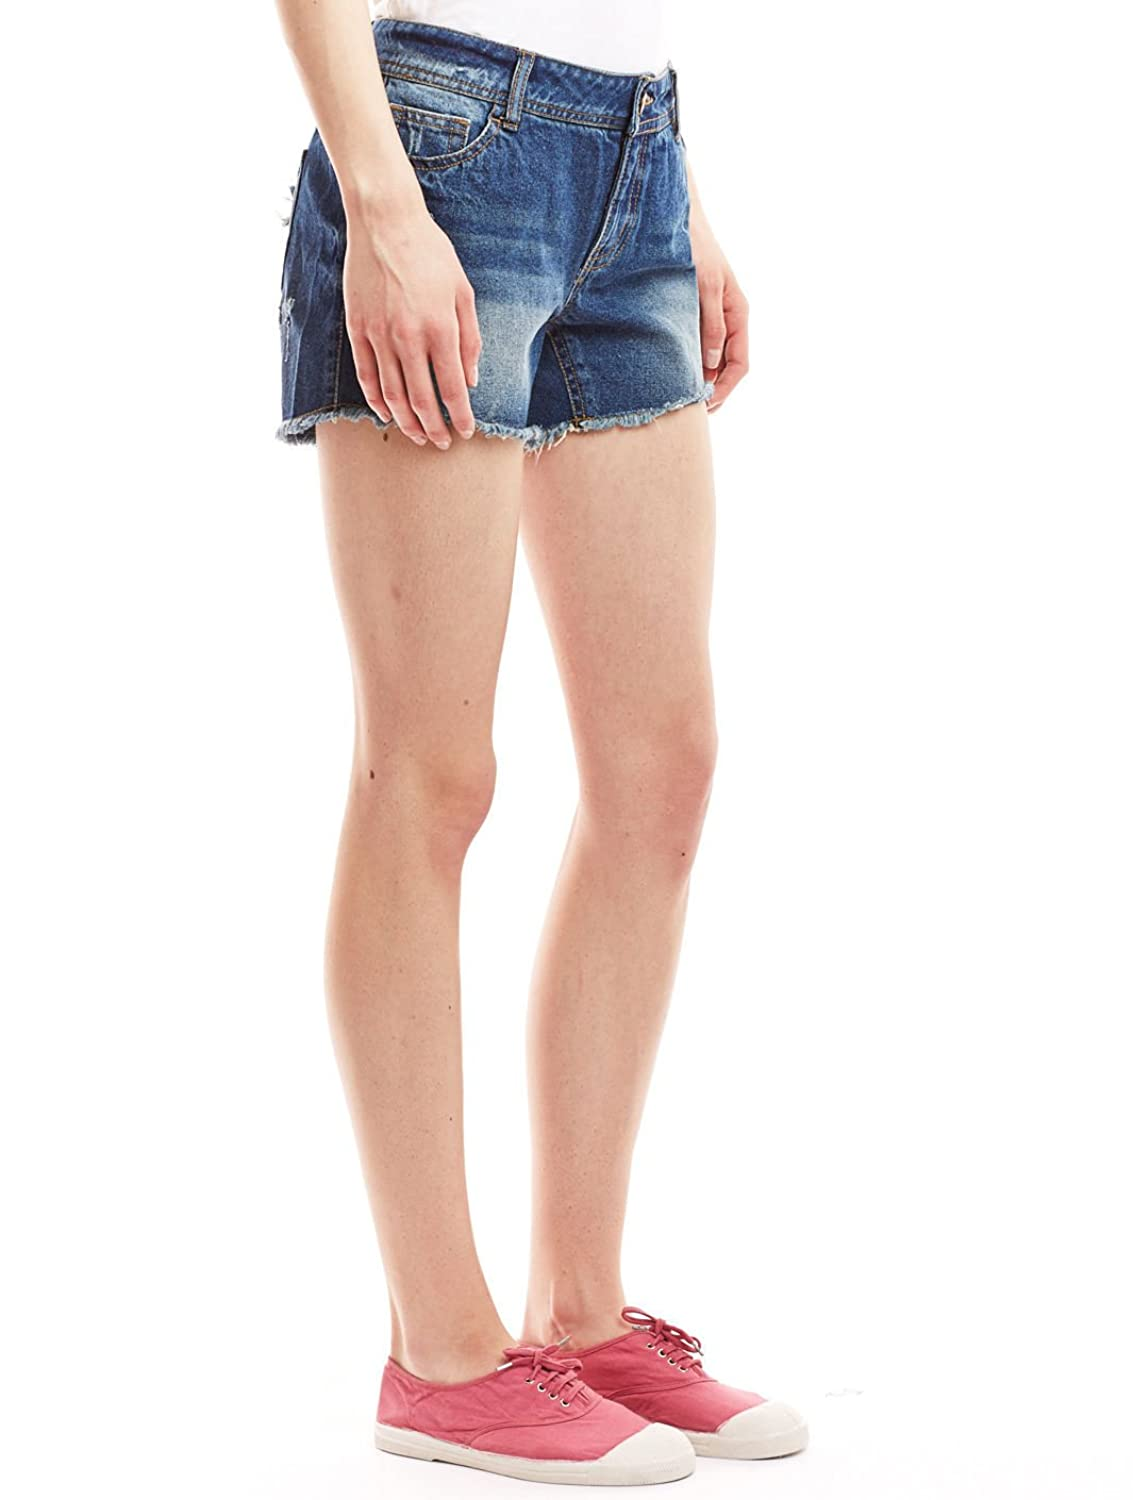 Paula LW Shorts by Vero Moda